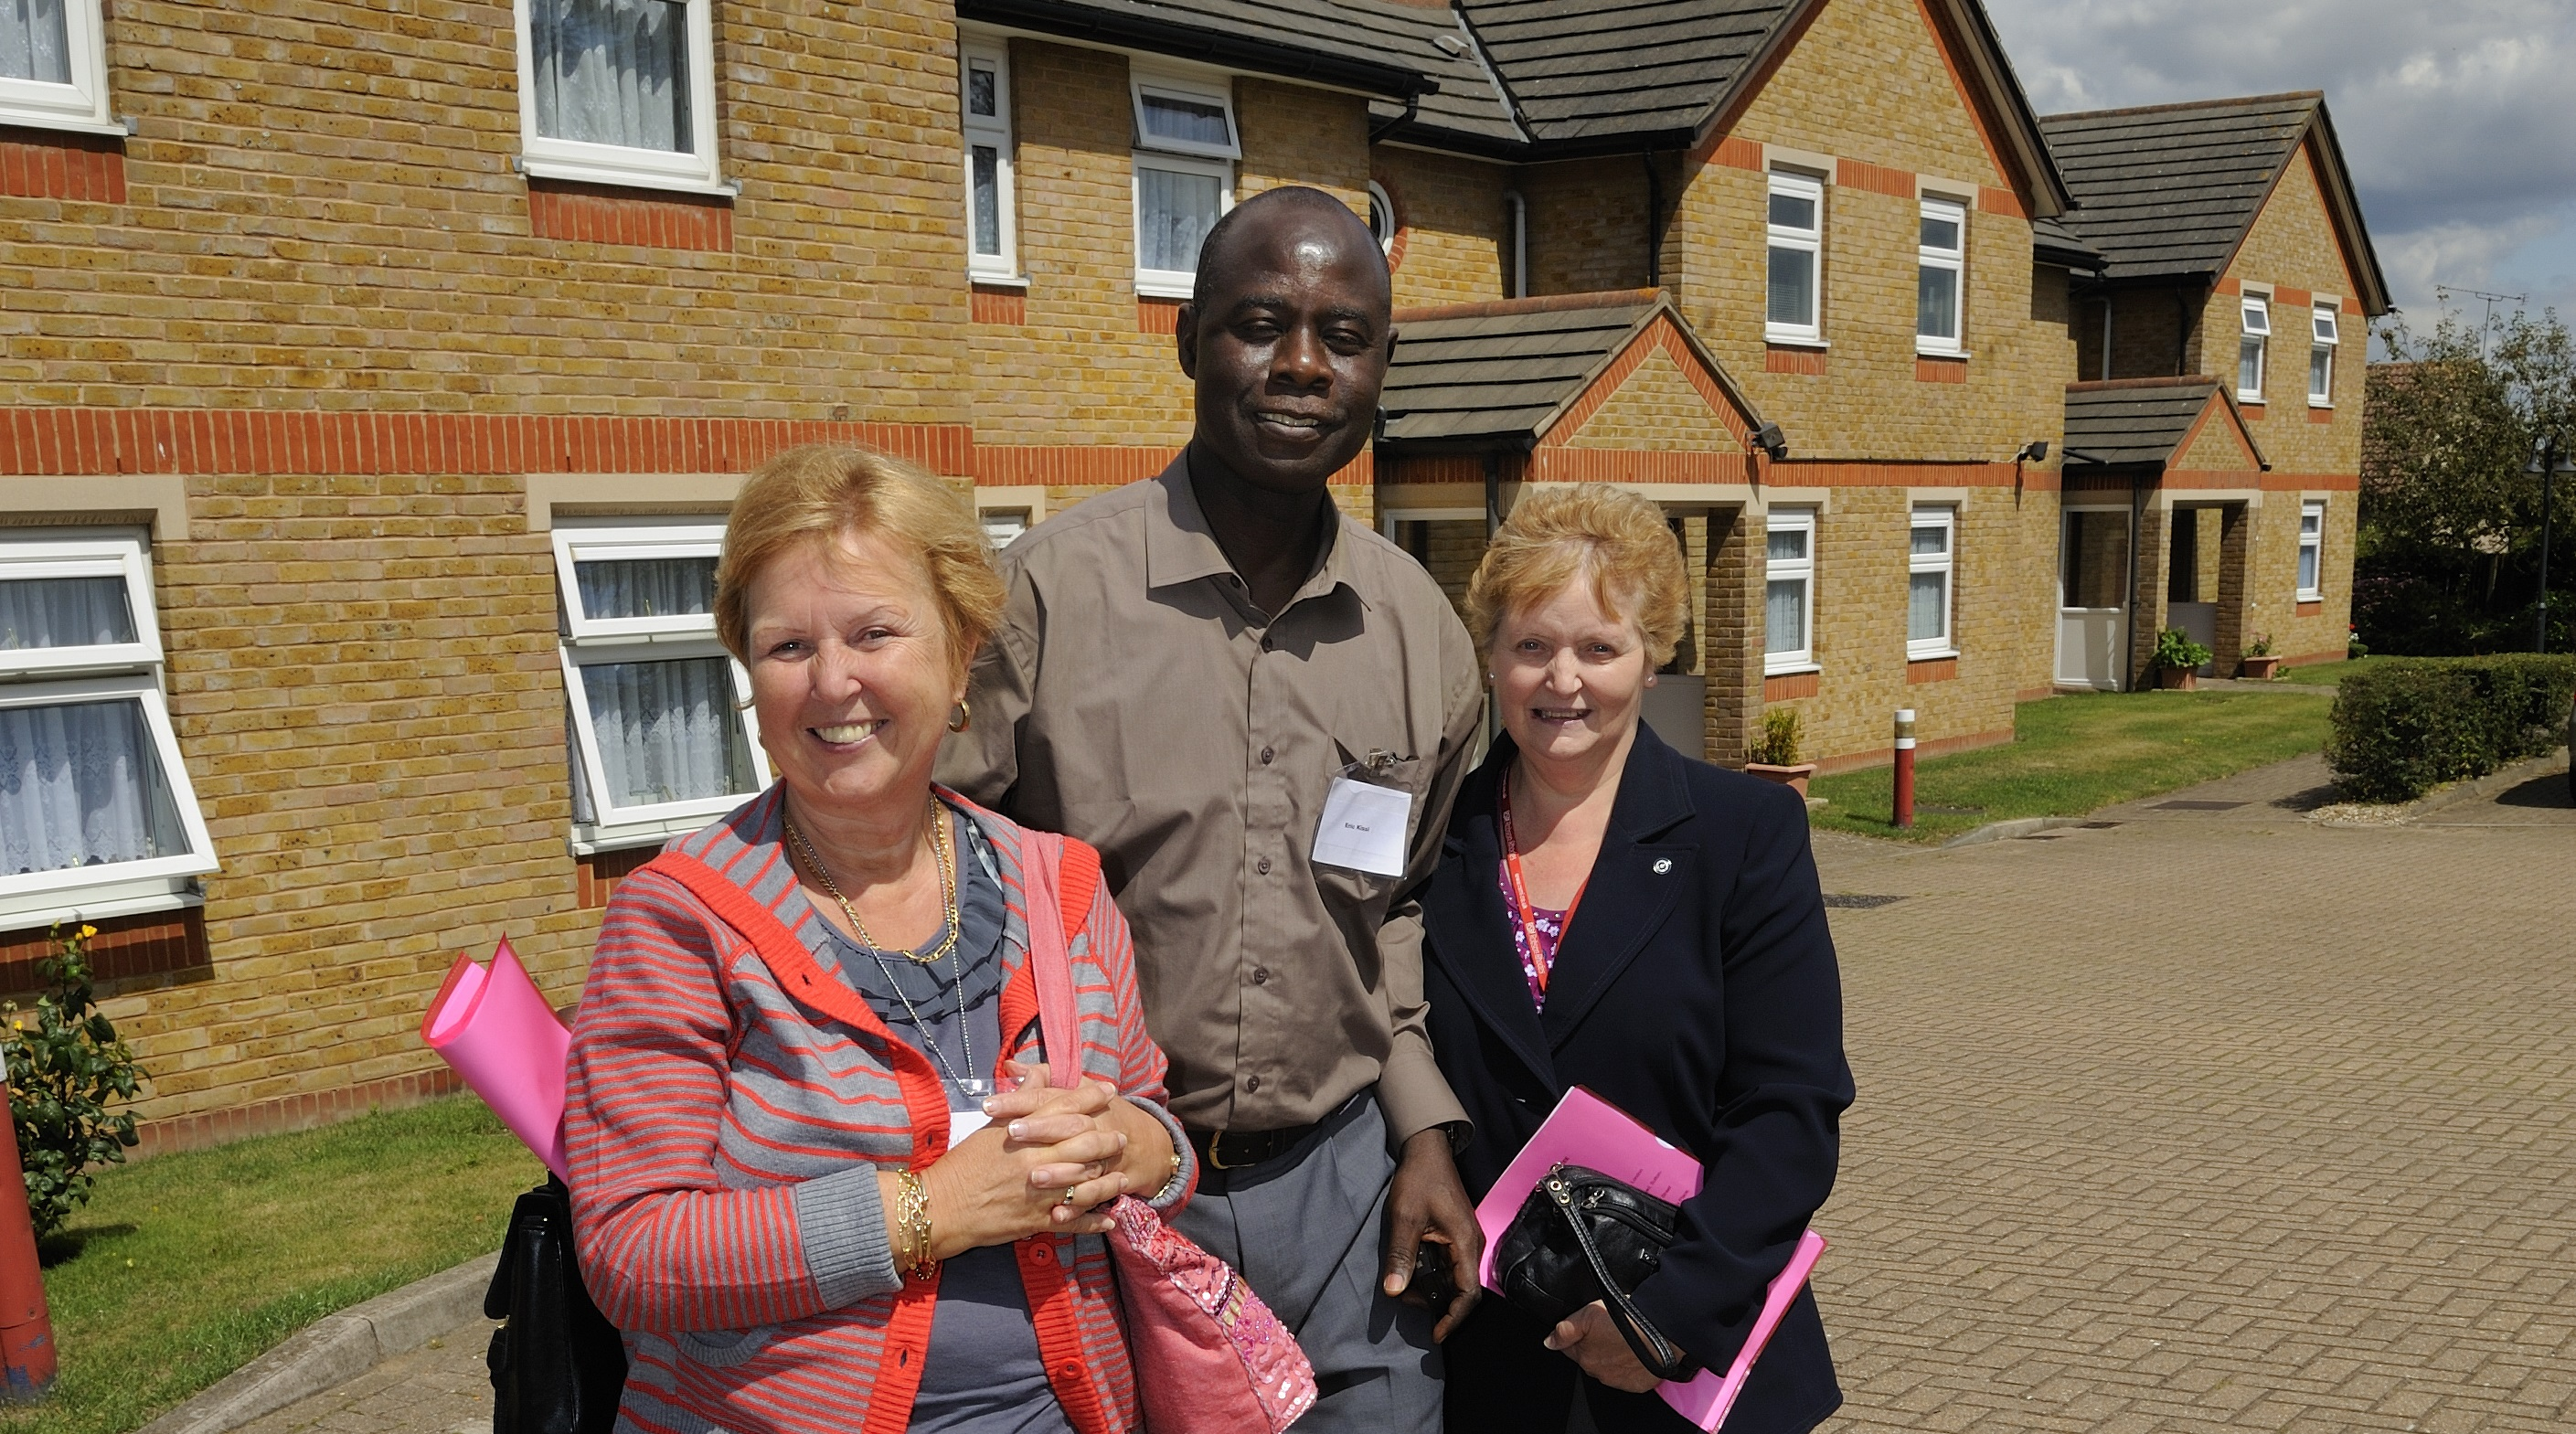 Perryview Housing Co-operative